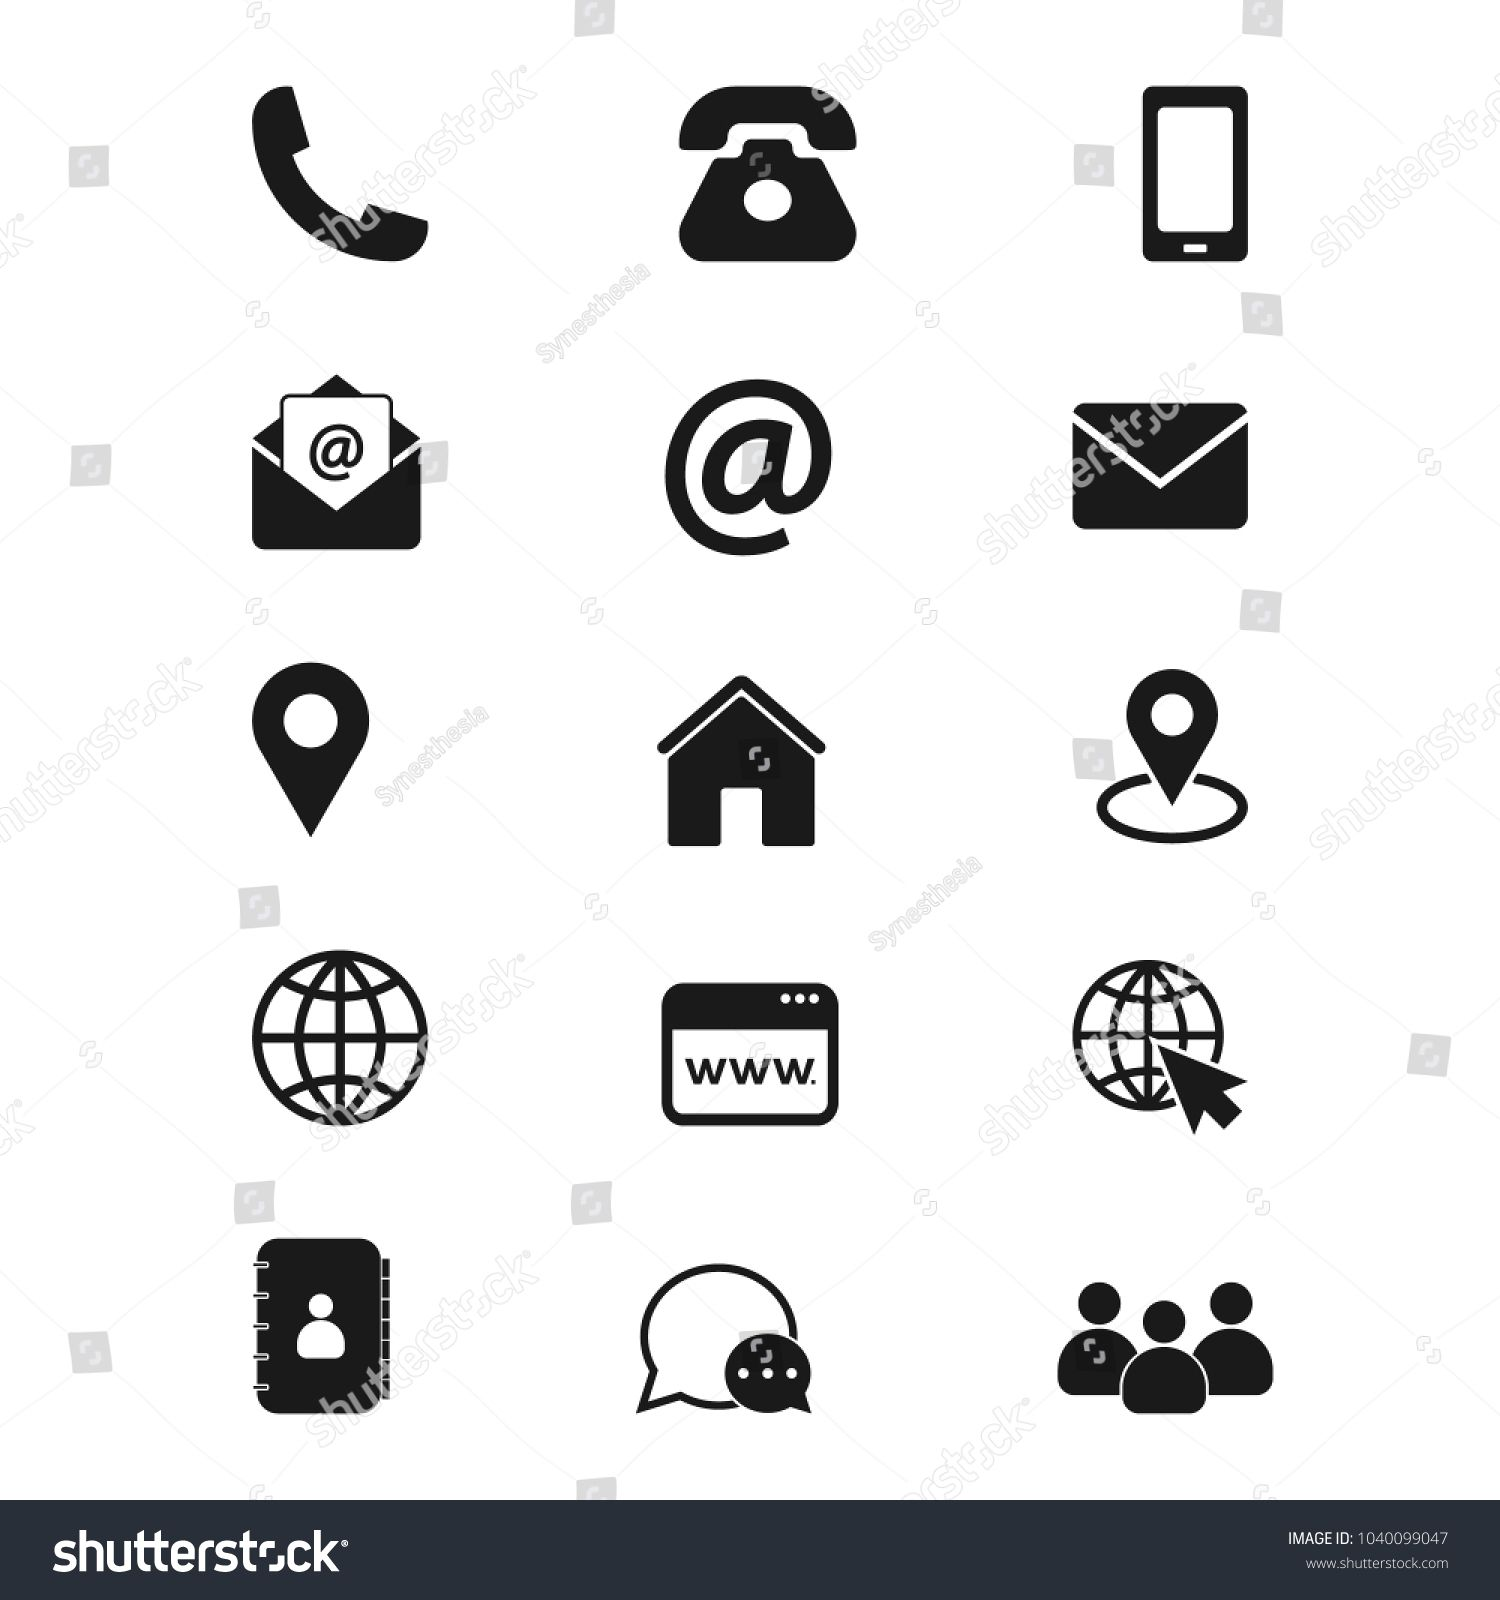 Contact us icons. Simple vector icons set on white